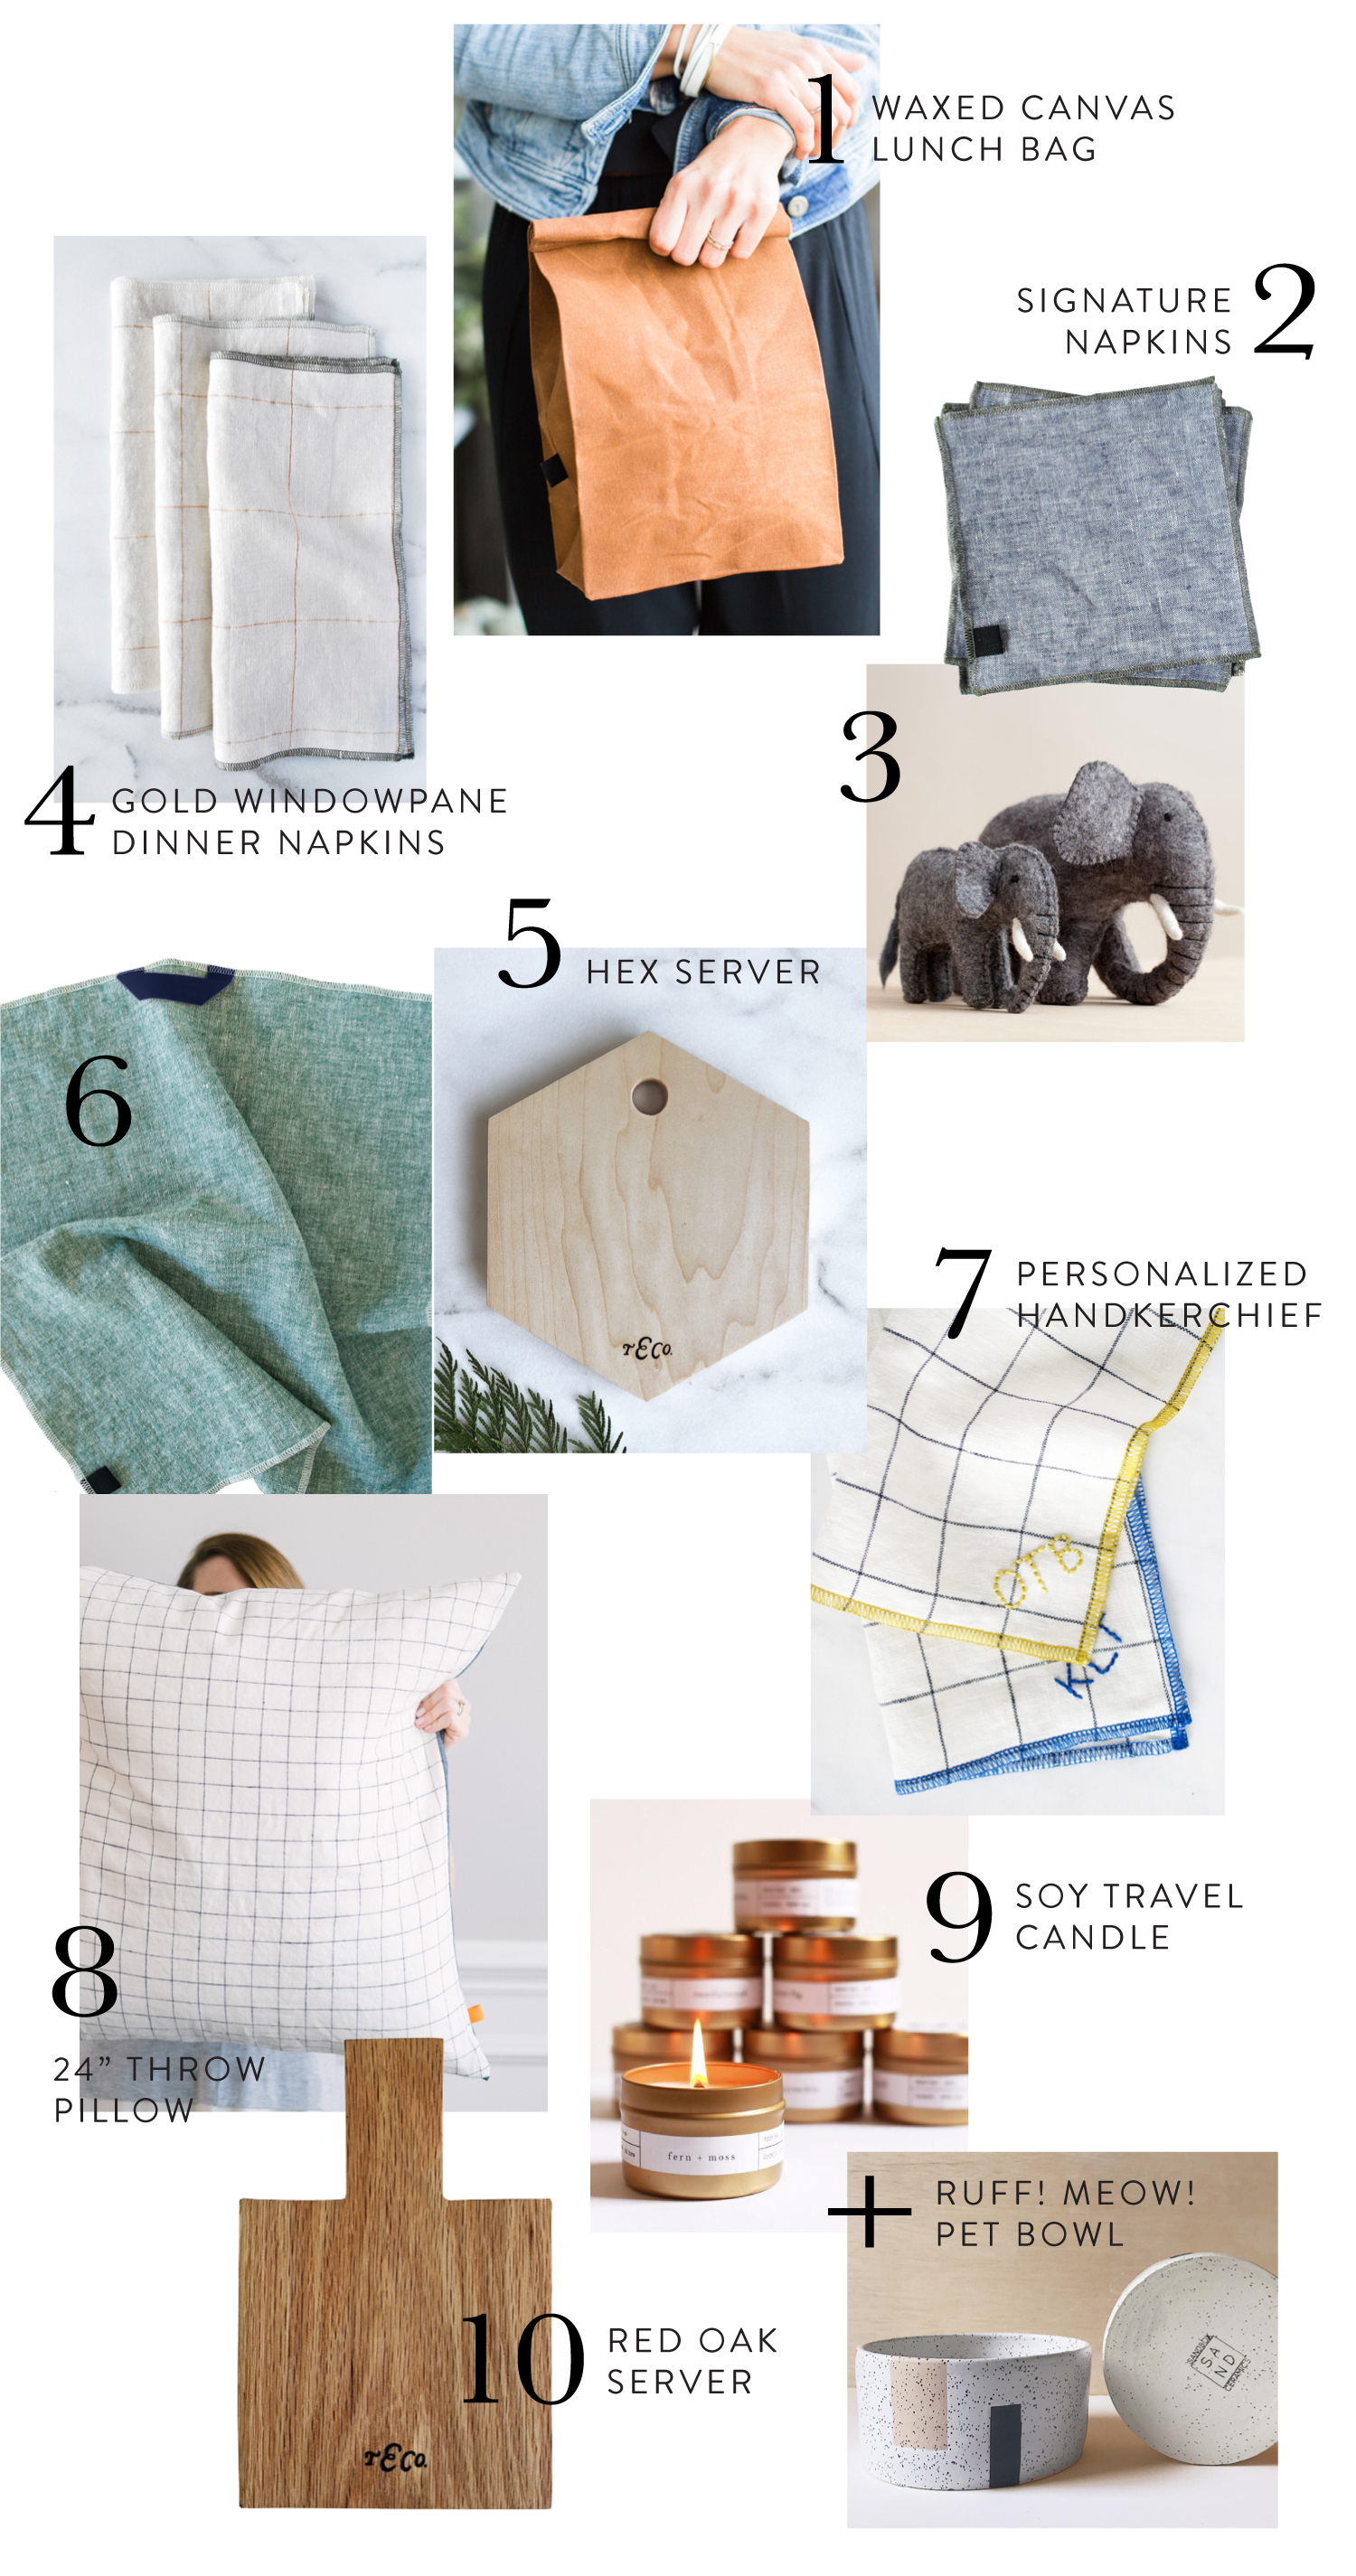 2017-less-is-more-simple-holiday-chirstmas-gift-guide-simple-thoughtful-meaningful-boston-handmade-local.jpg